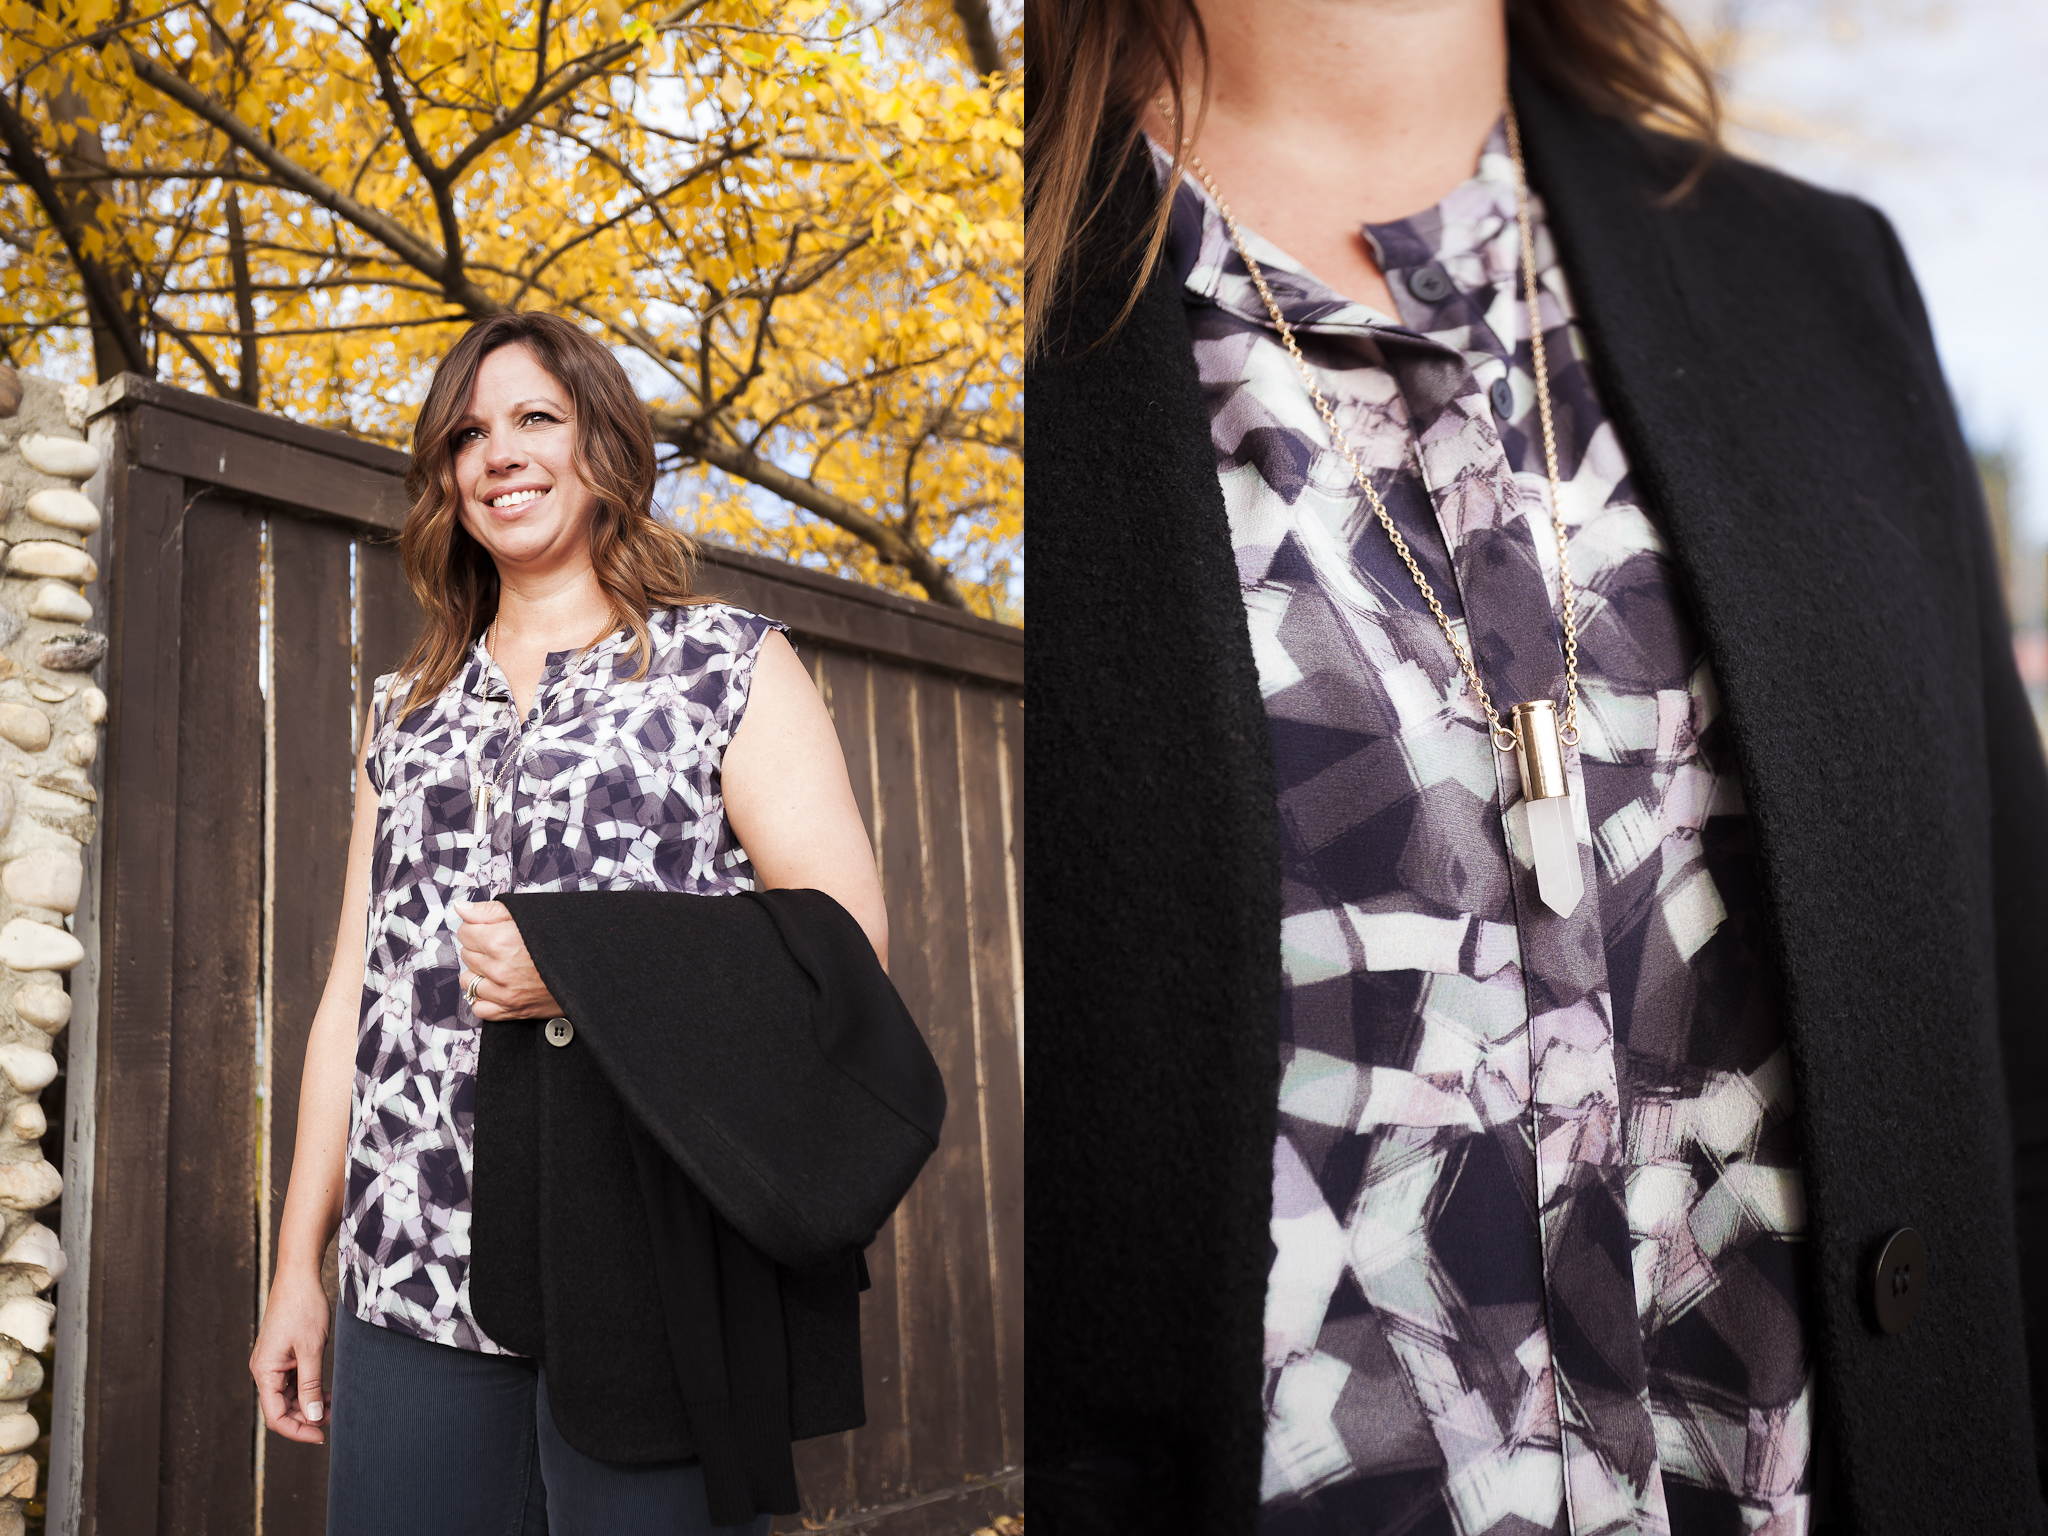 bella maas edmonton boutique sherwood park st. albert rebecca taylor floral blouse fall fashion 2014 06